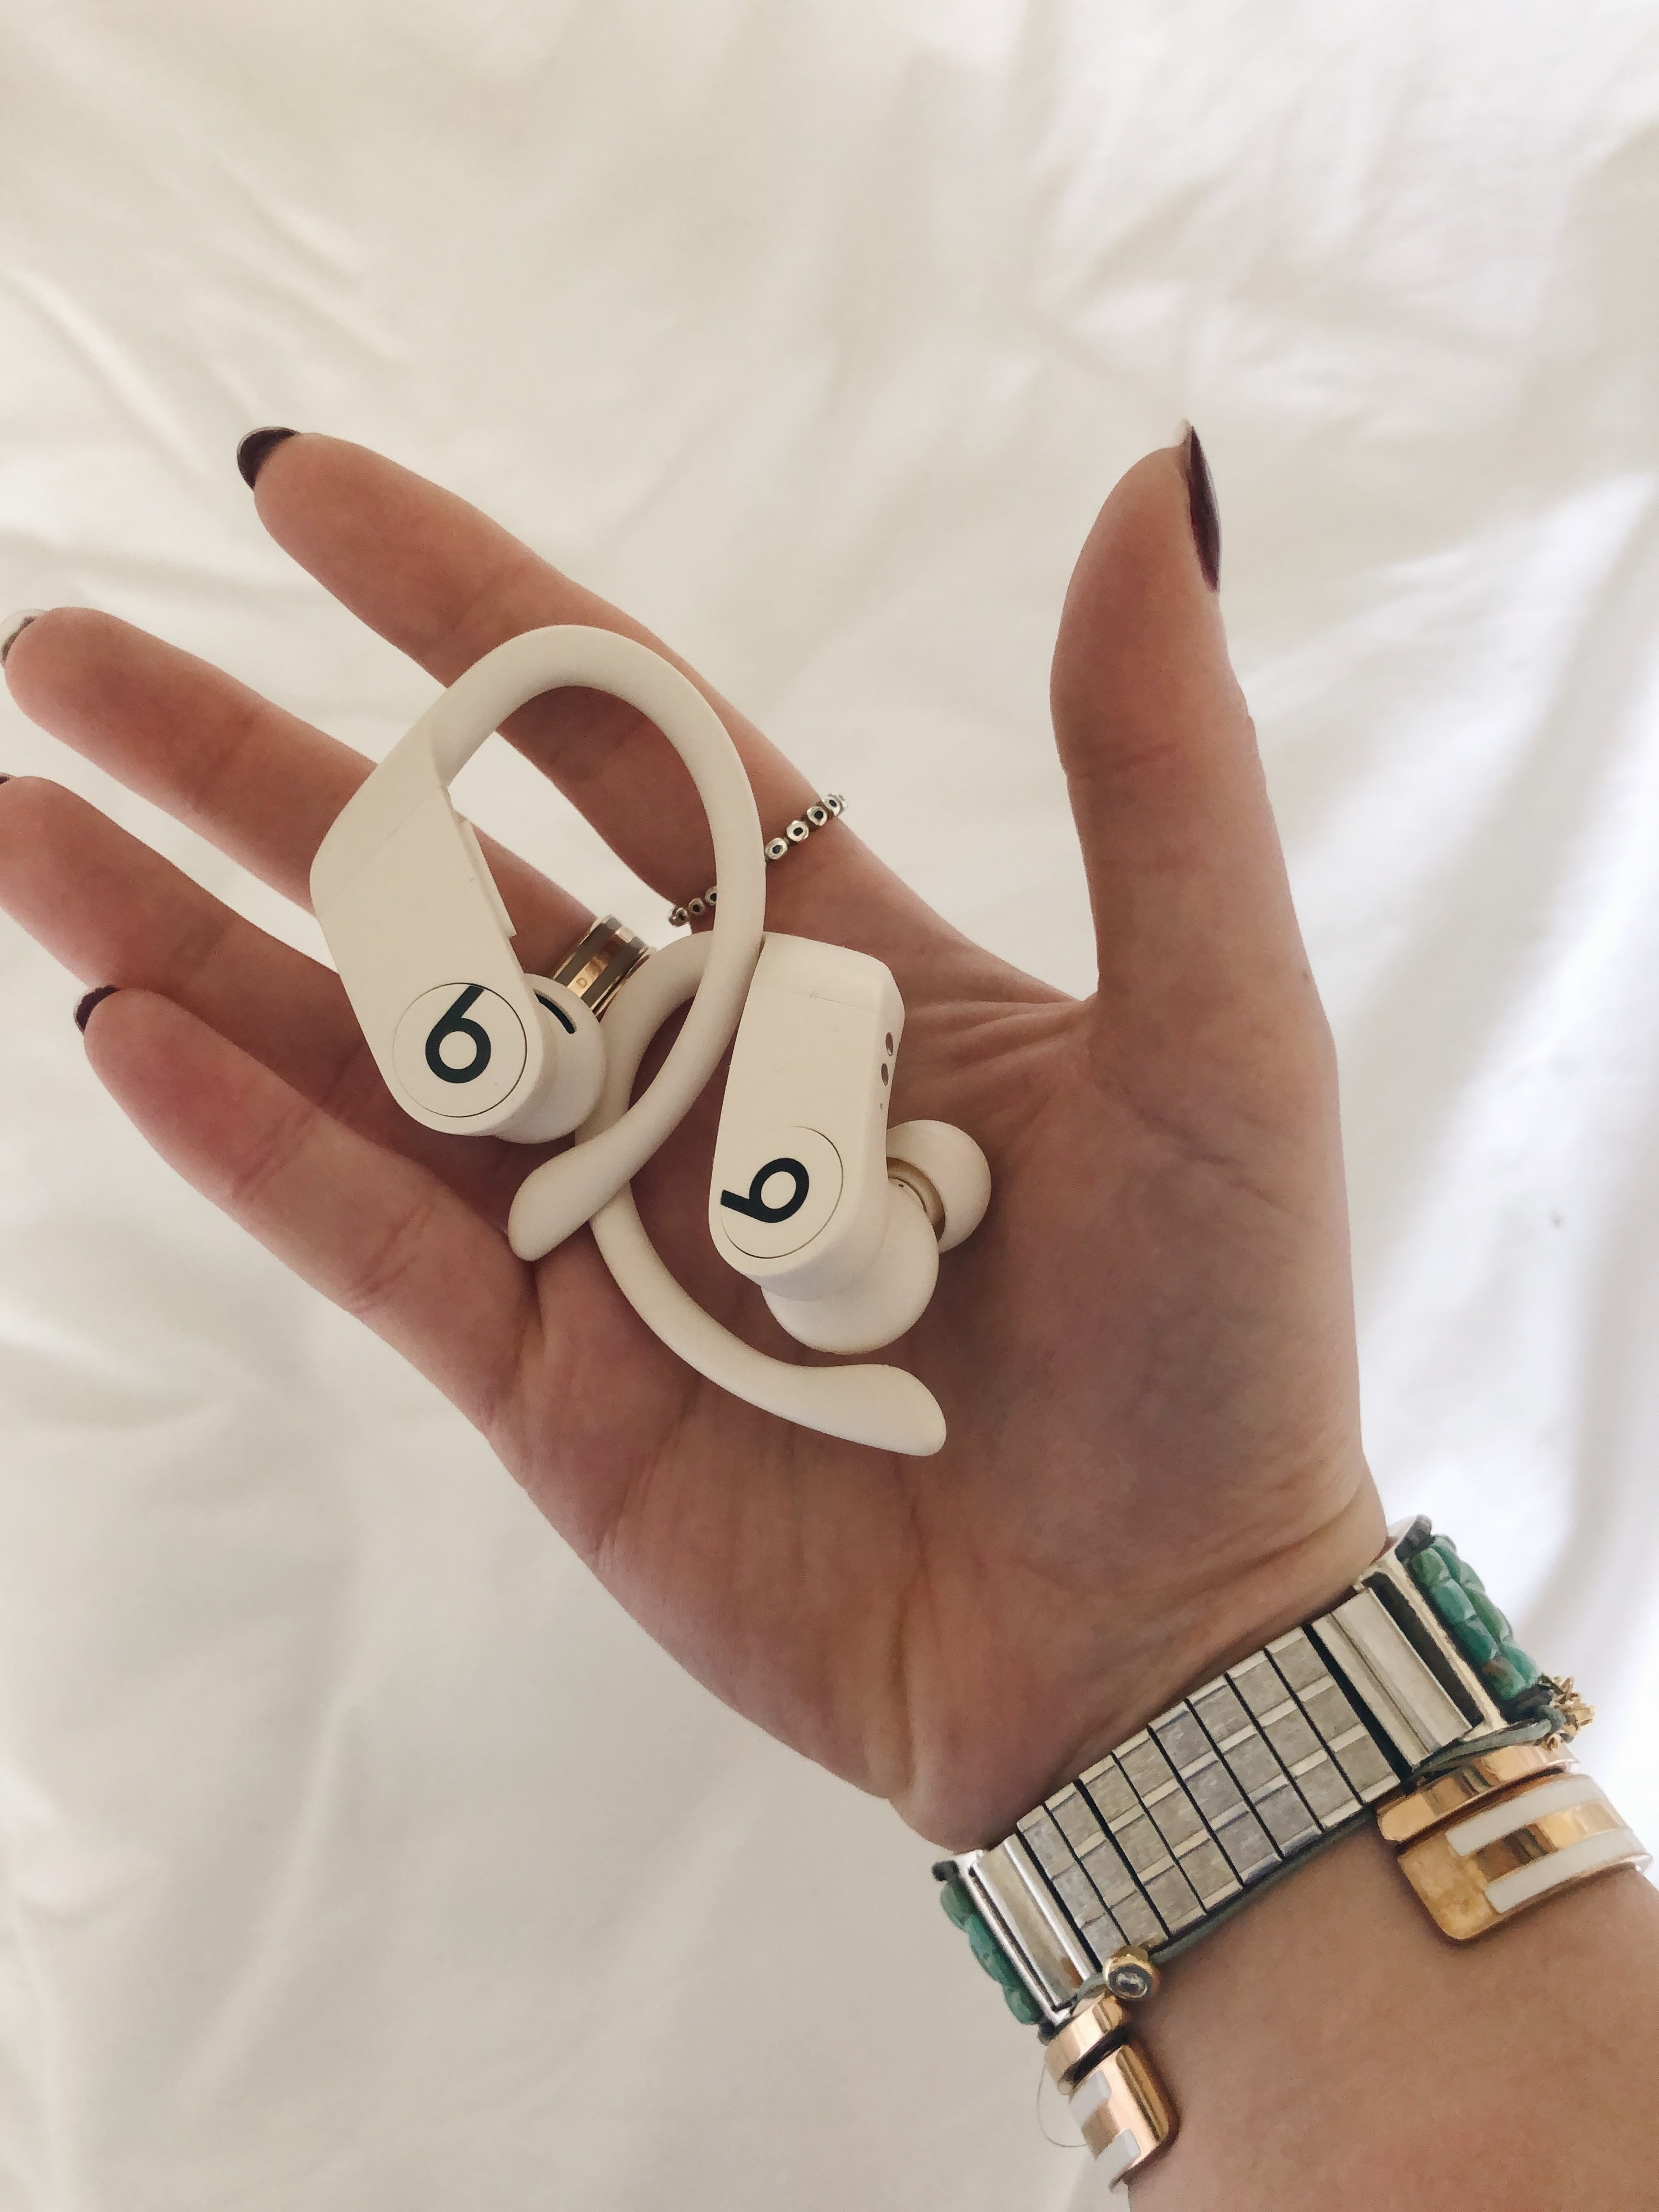 BuzzFeed Shopping reviewer holding the earbuds in white